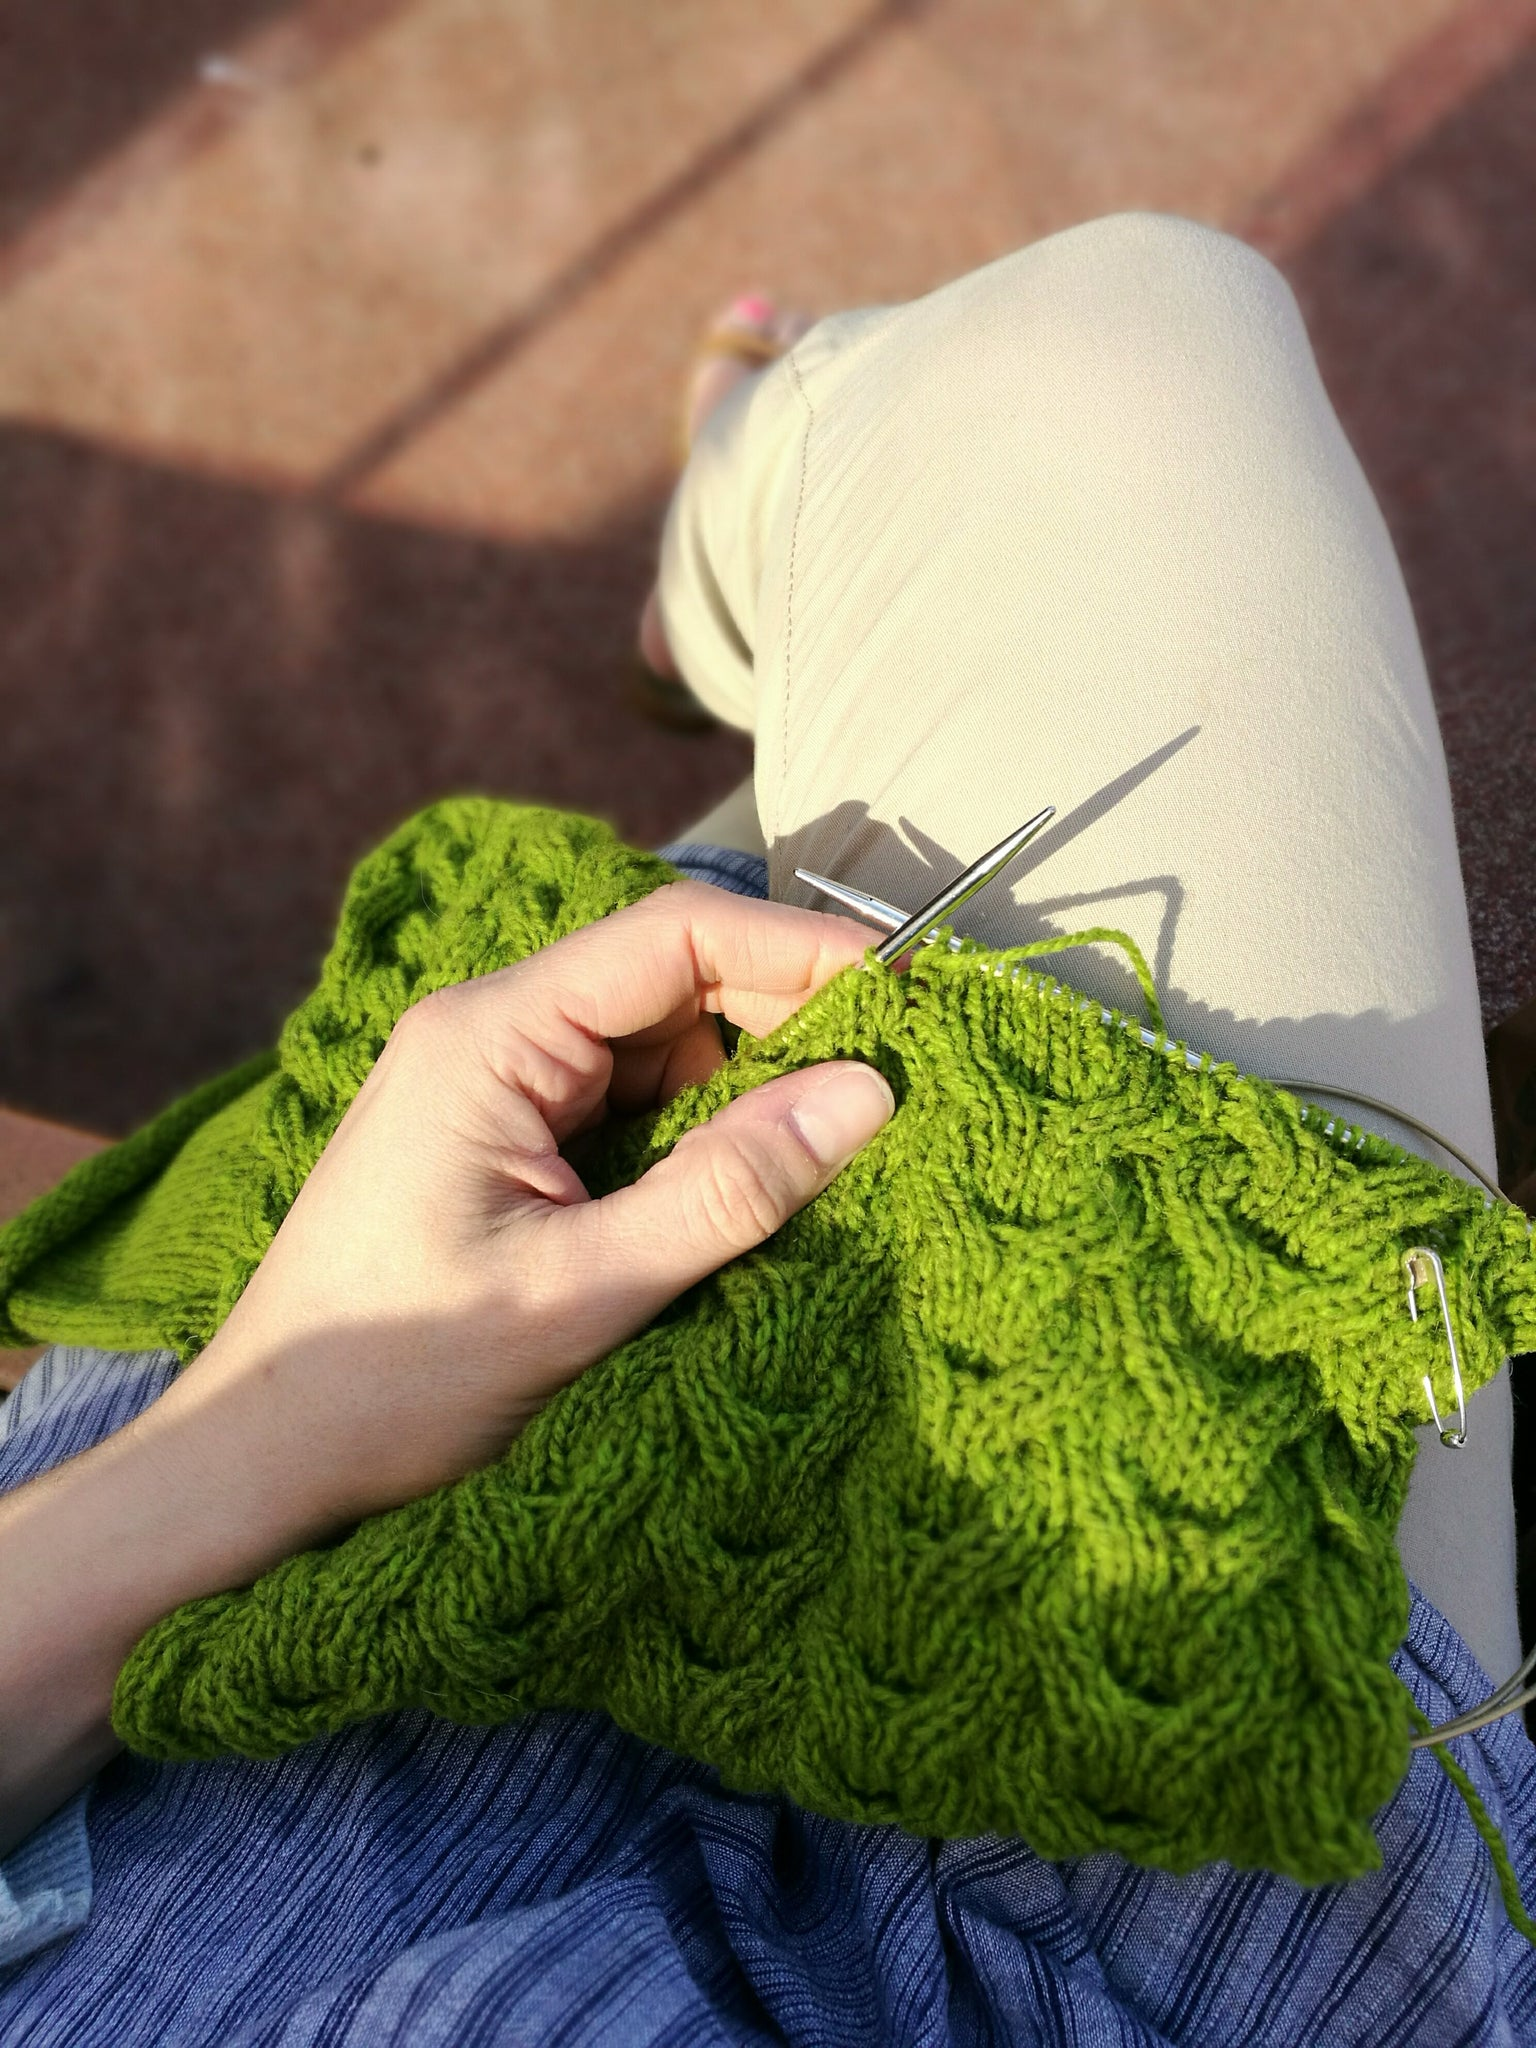 Image of knitting shot from above, in warm sunshine. A white skinned hand holds the needle, the project is a cabled cowl in green yarn.